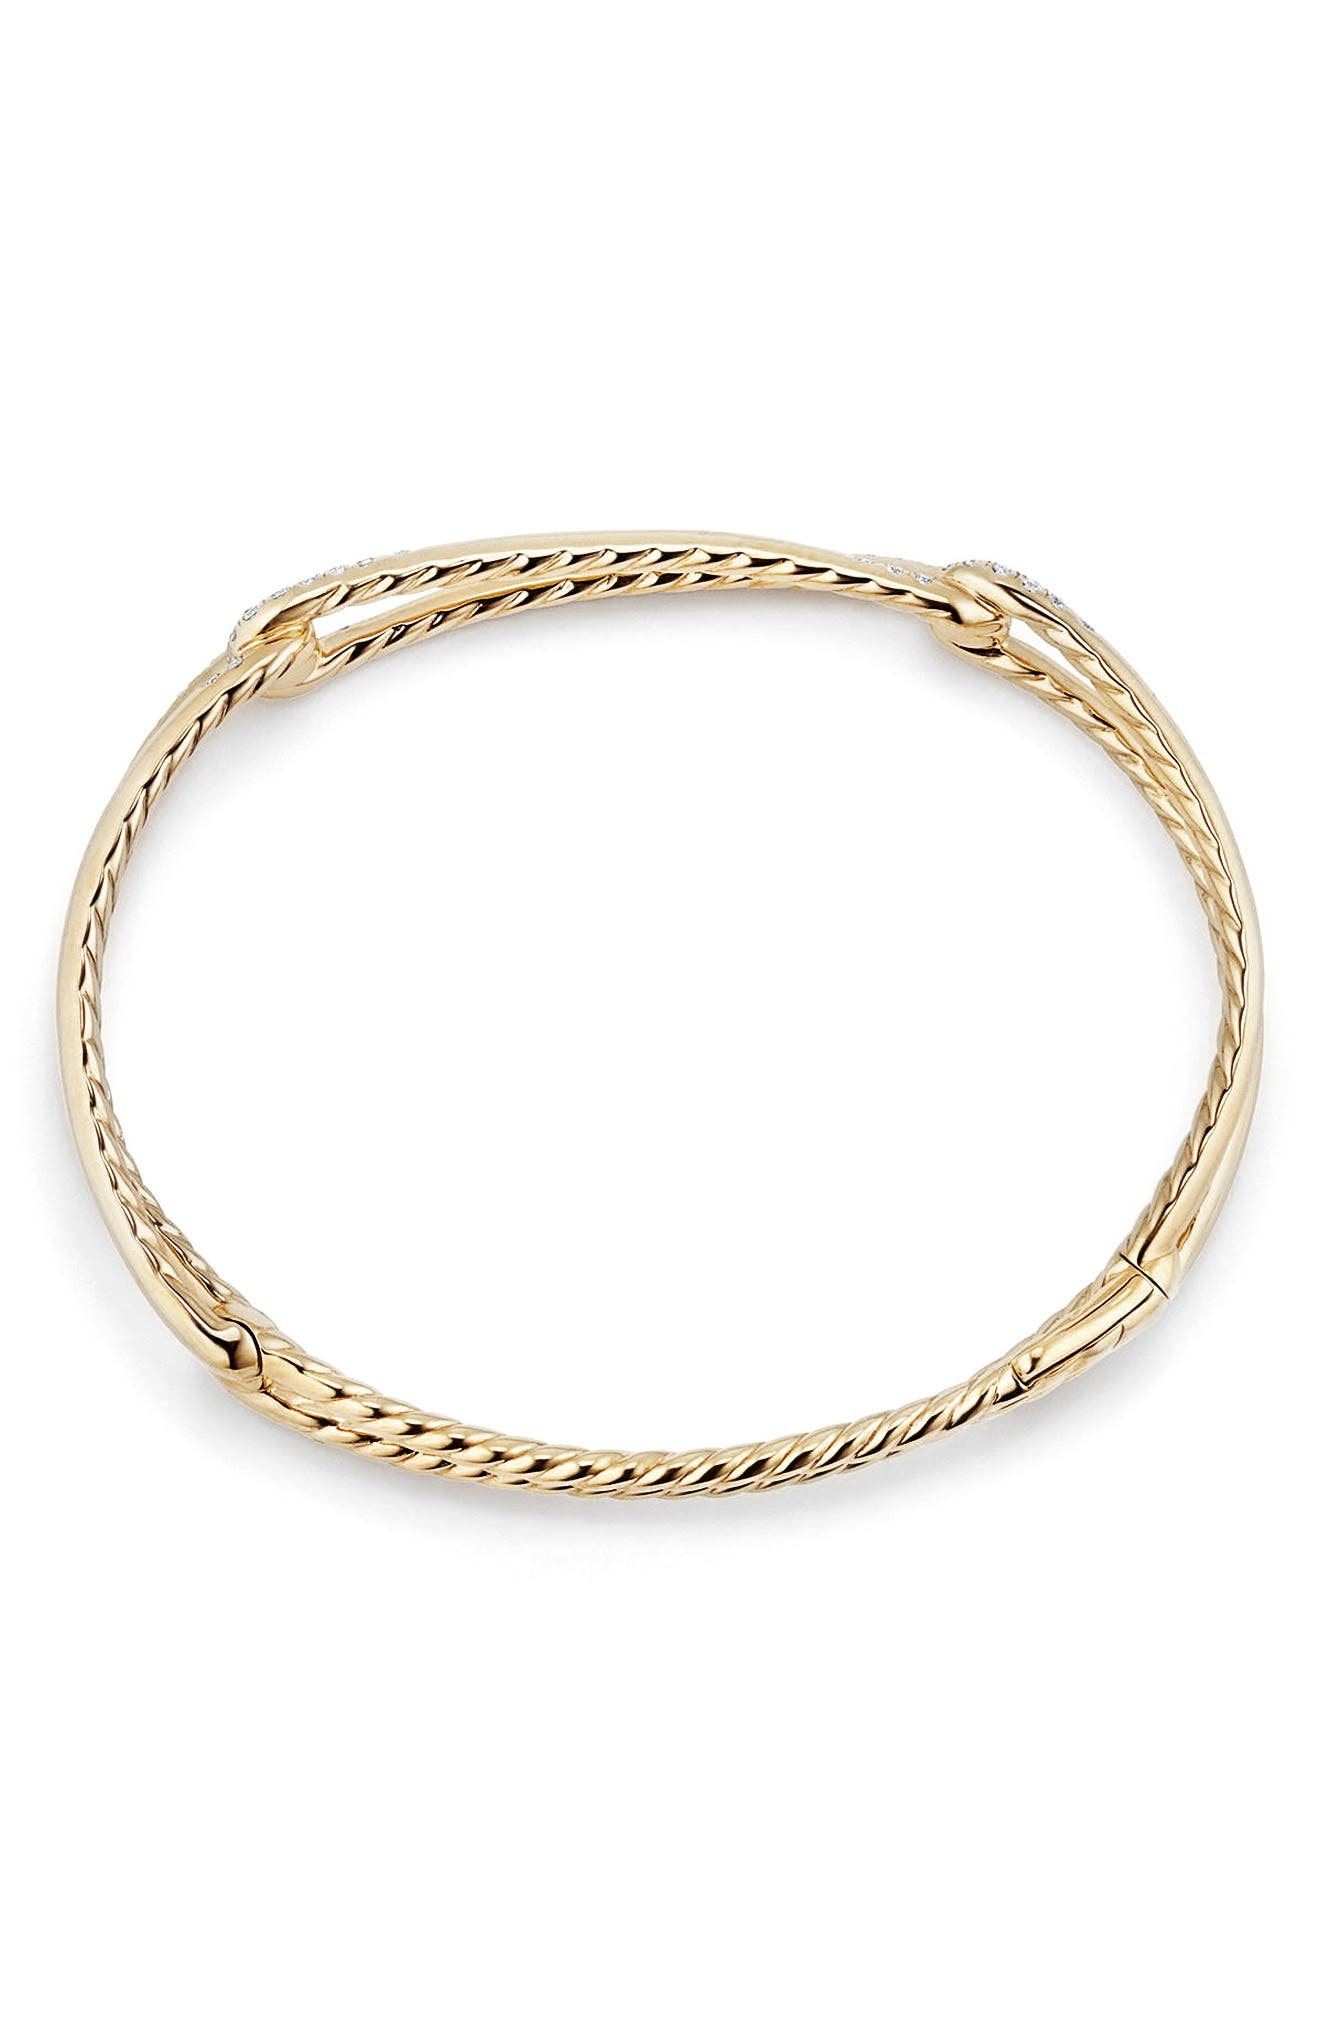 Continuance Bracelet with Diamond in 18K Gold,                             Alternate thumbnail 3, color,                             YELLOW GOLD